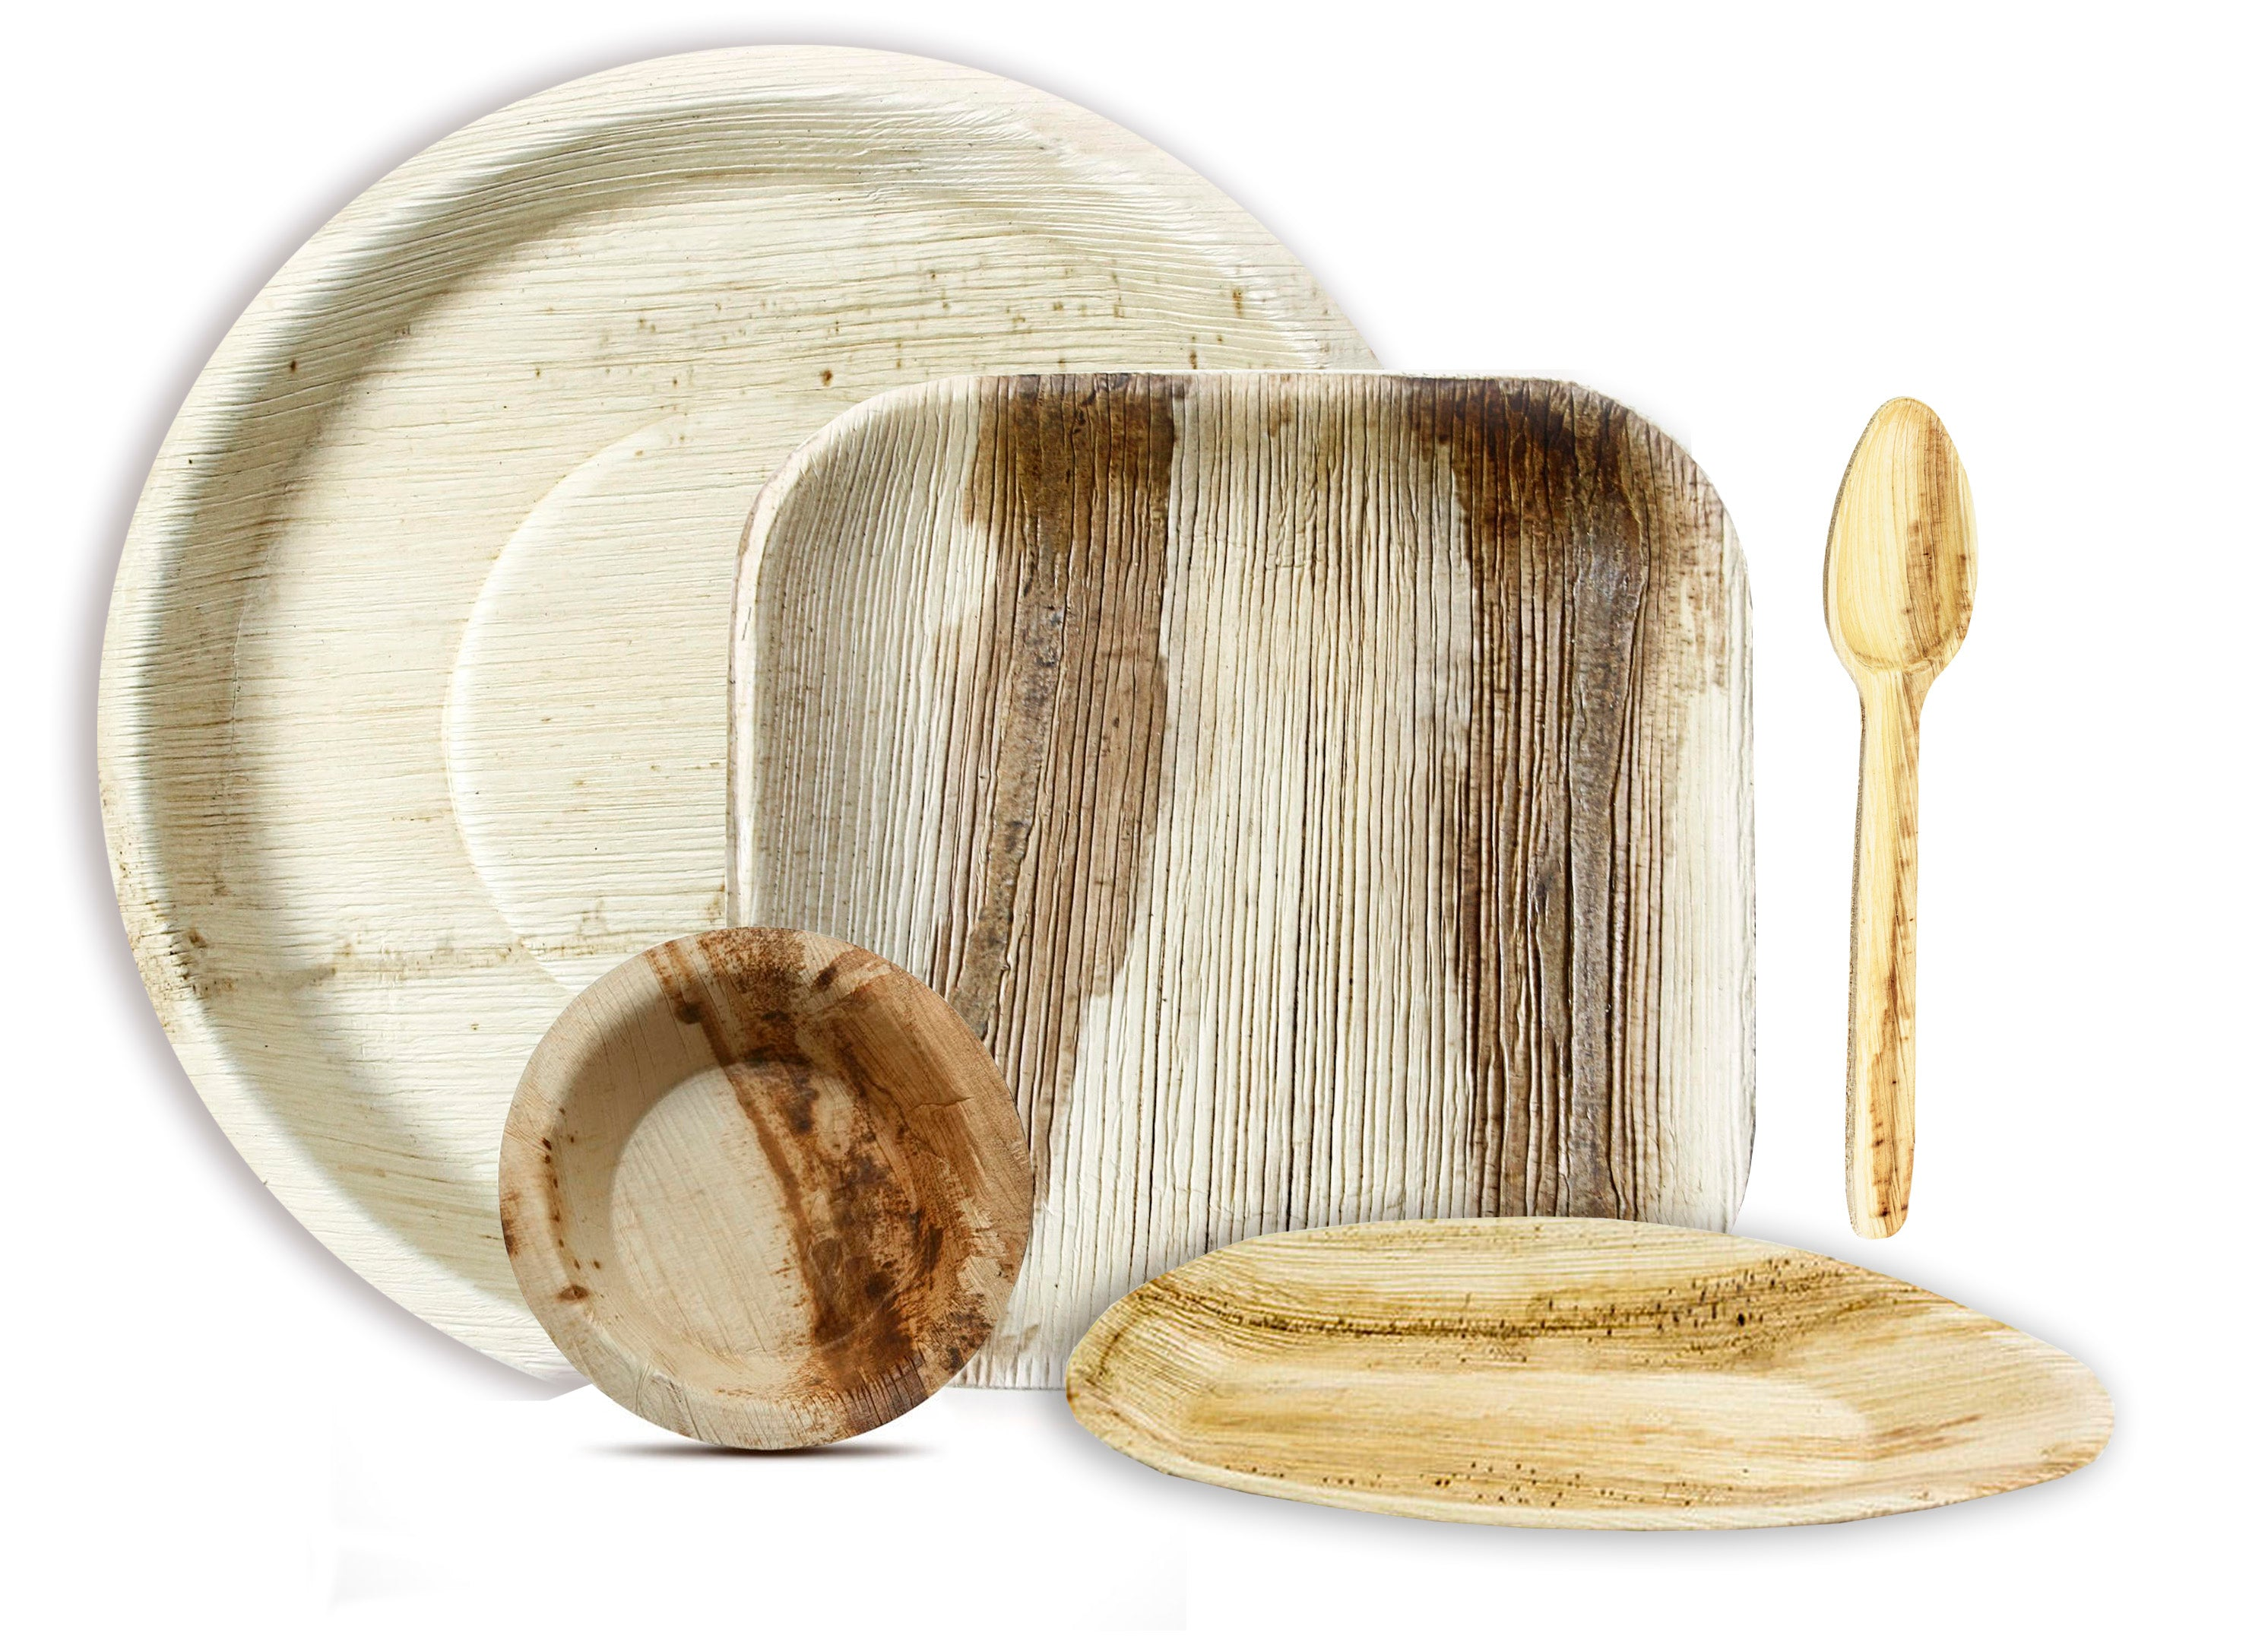 Combo Set of Areca Palm leaf Plate and bowl for 20 people .